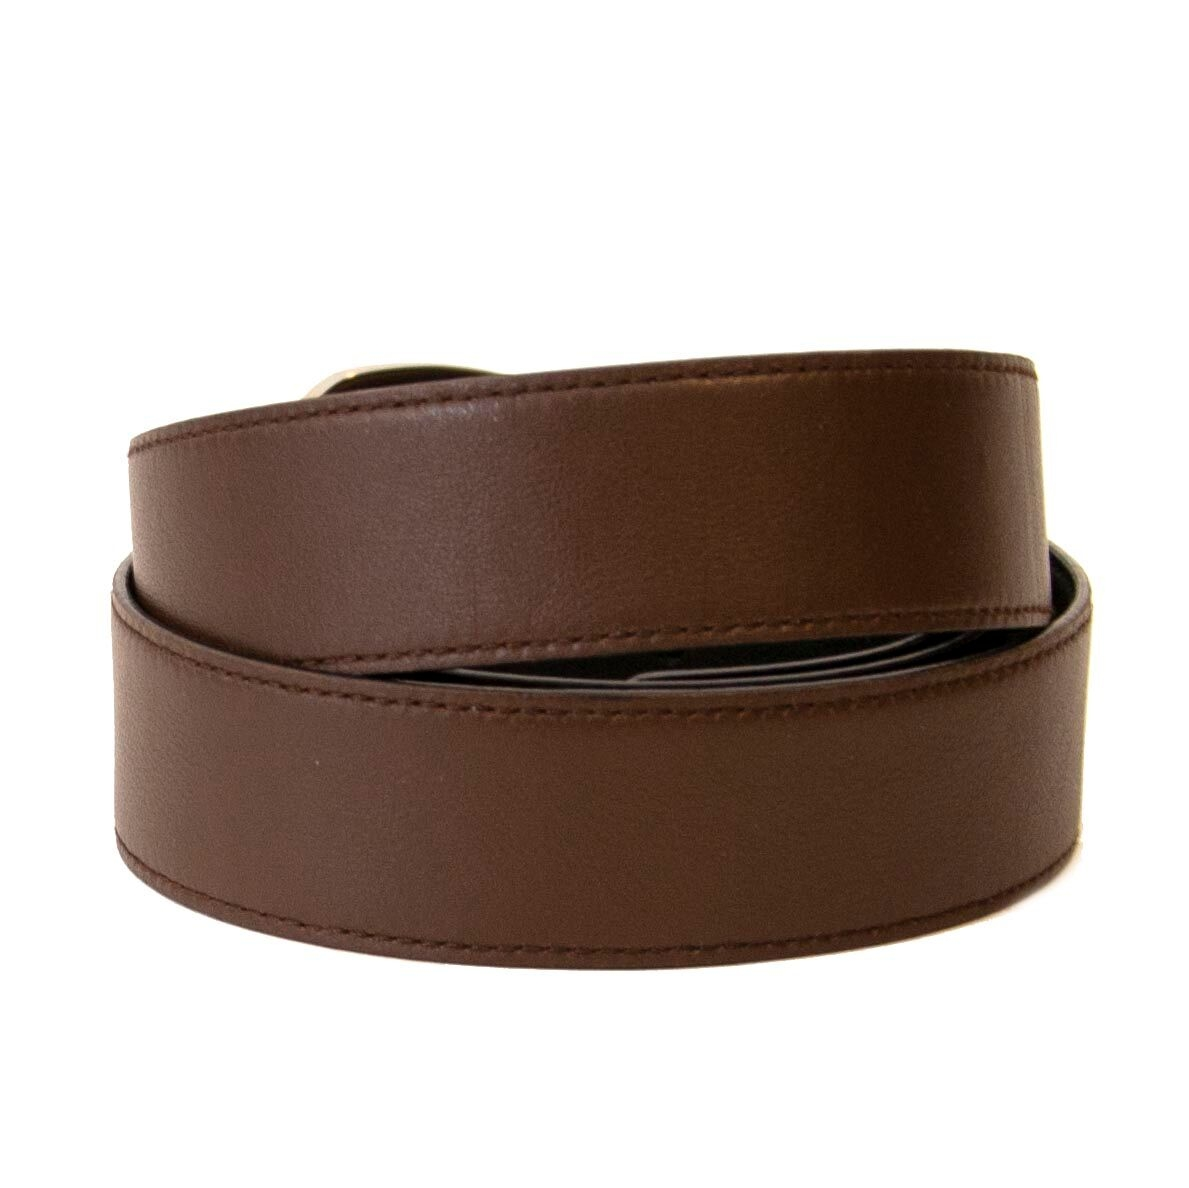 Buy this authentic second-hand Ferragamo Dark Brown Leather Belt at online webshop LabelLOV.